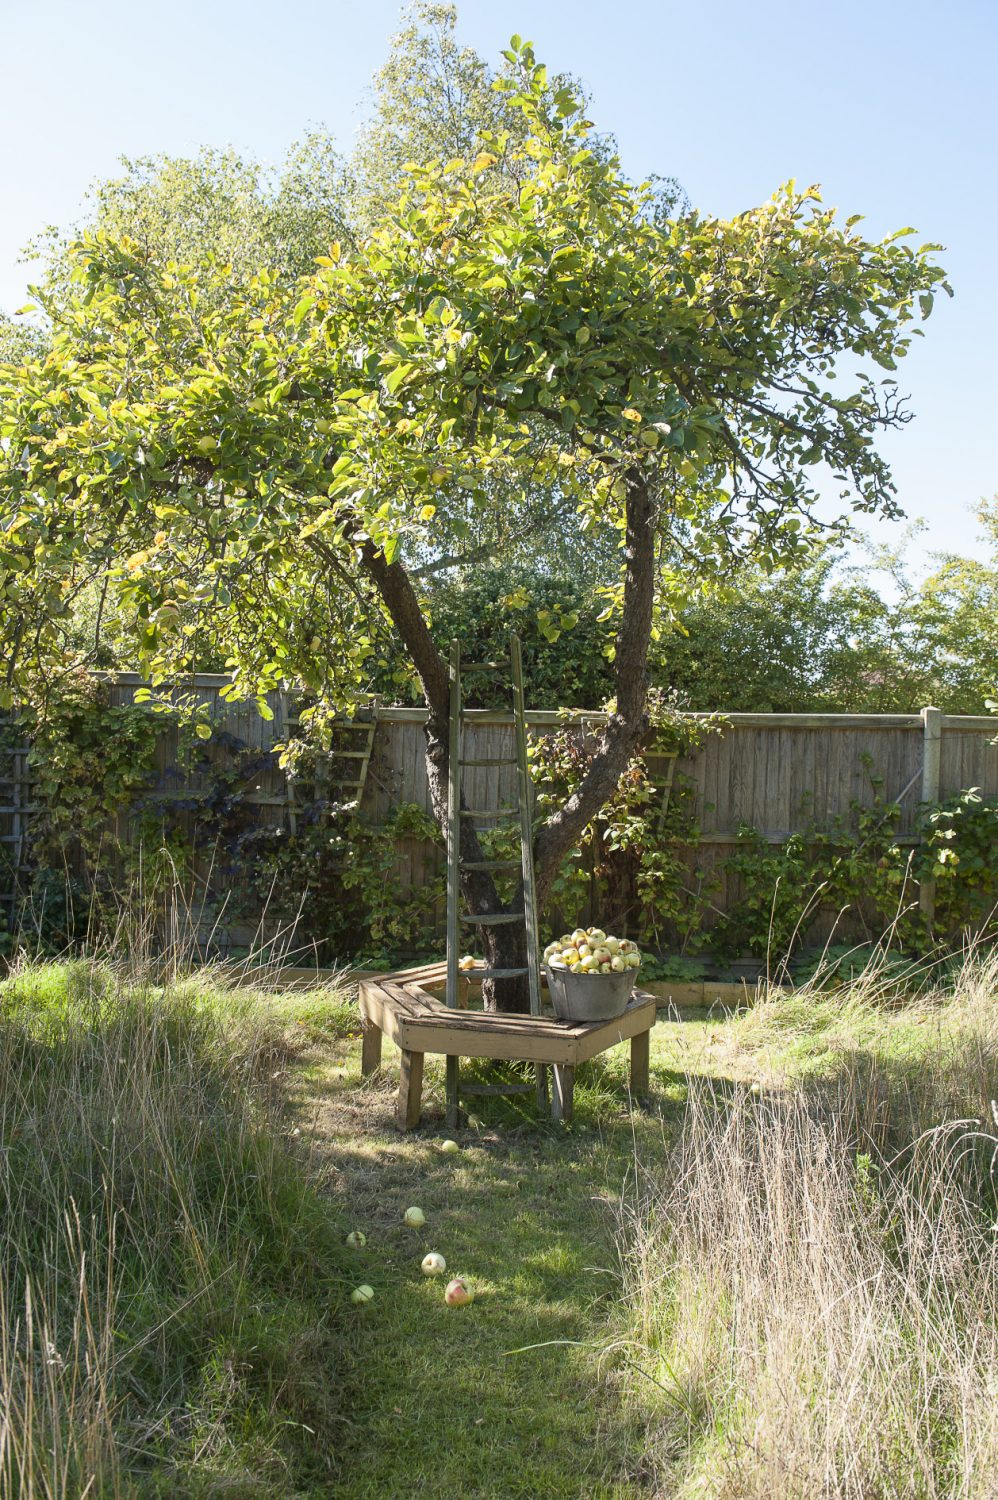 One of many fruit trees in the back garden